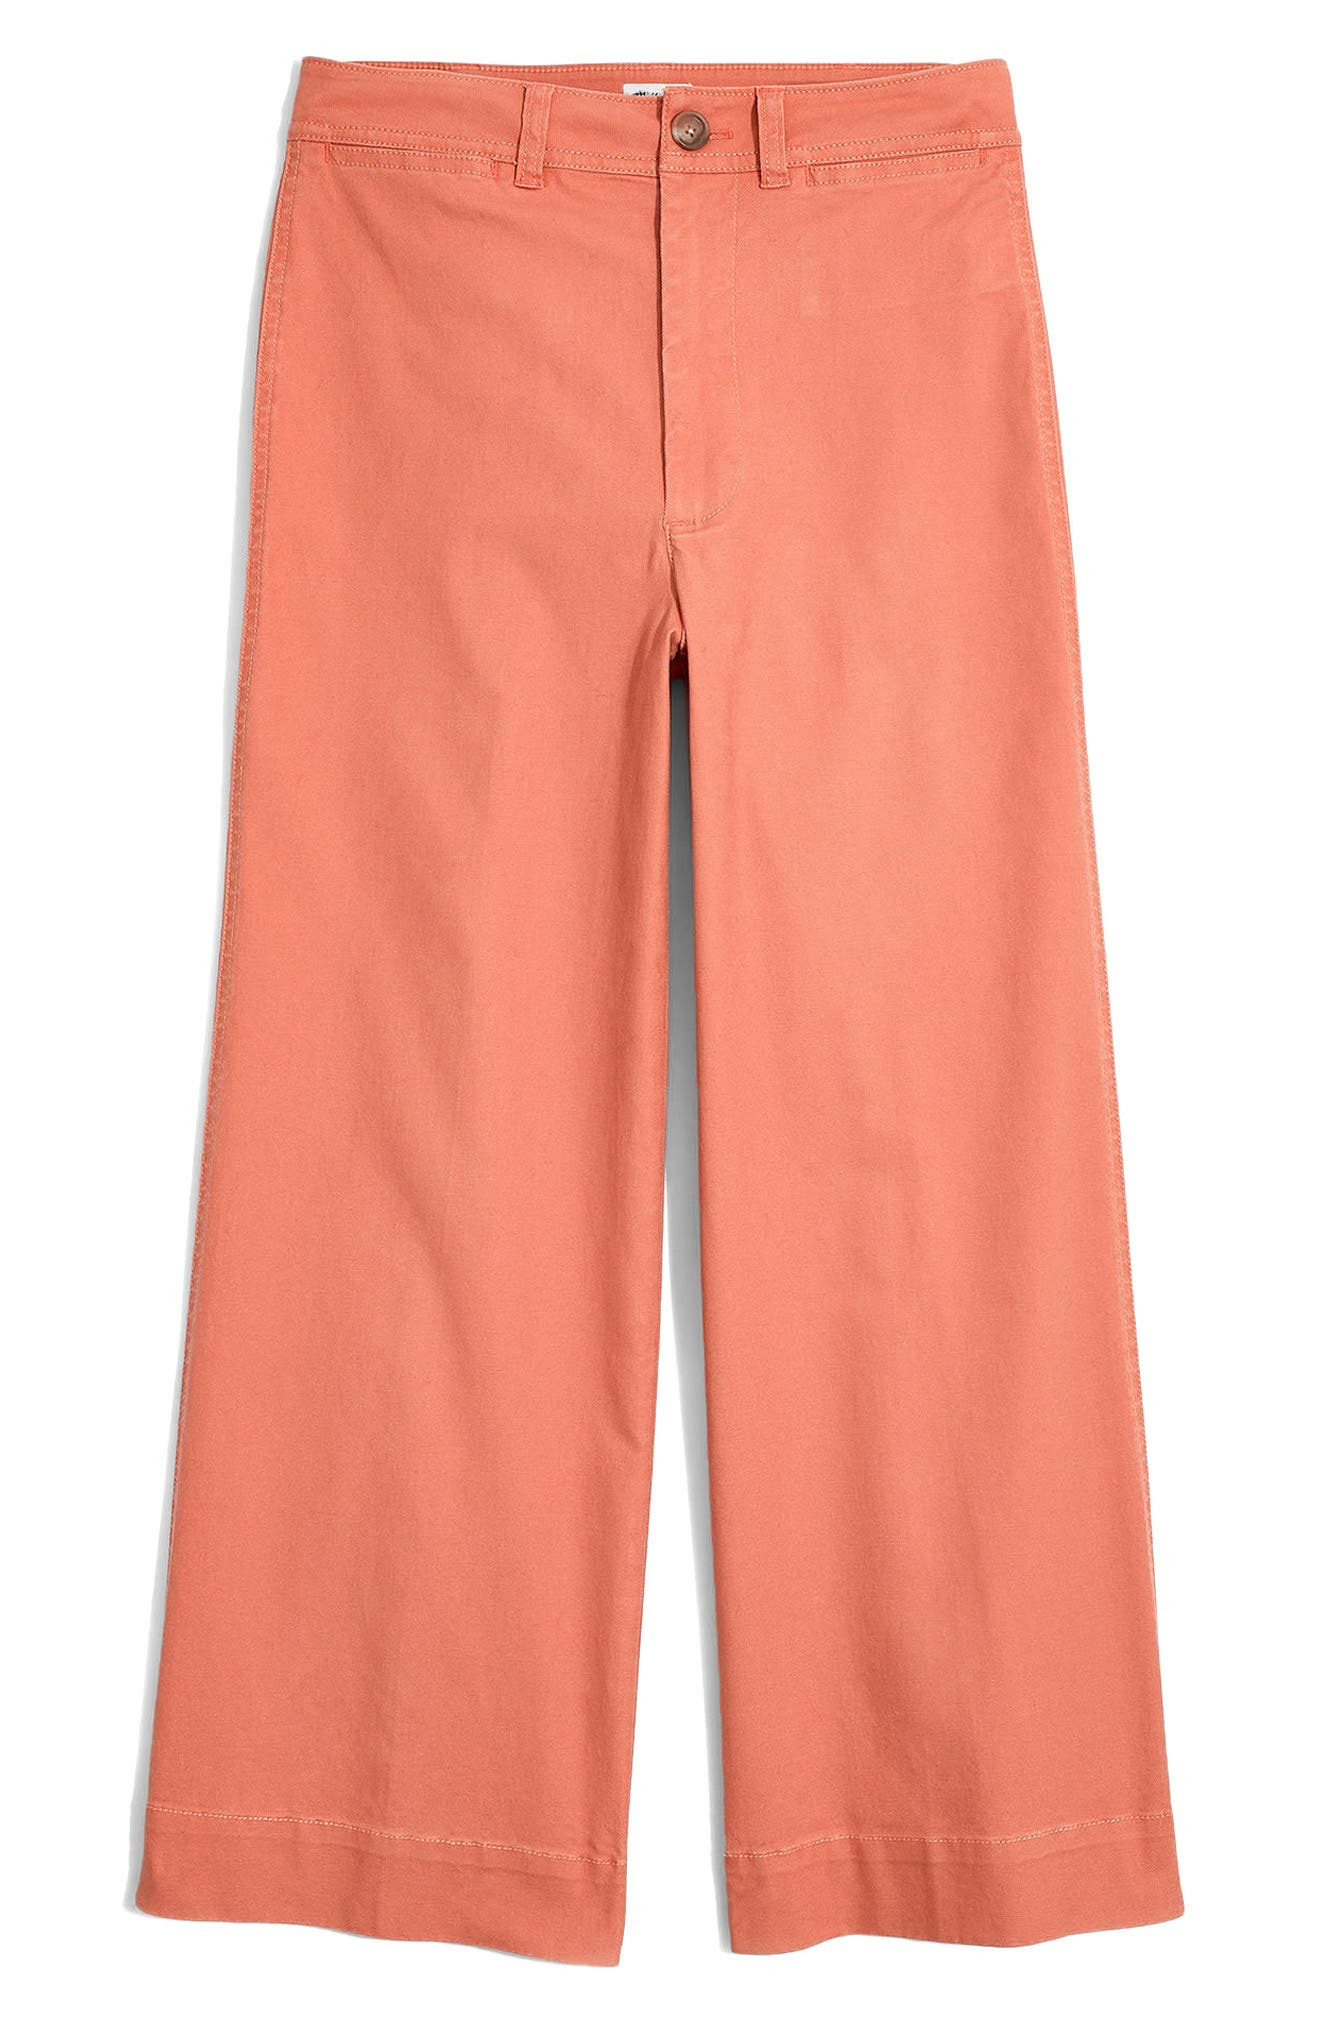 Emmett Crop Wide Leg Pants,                             Alternate thumbnail 21, color,